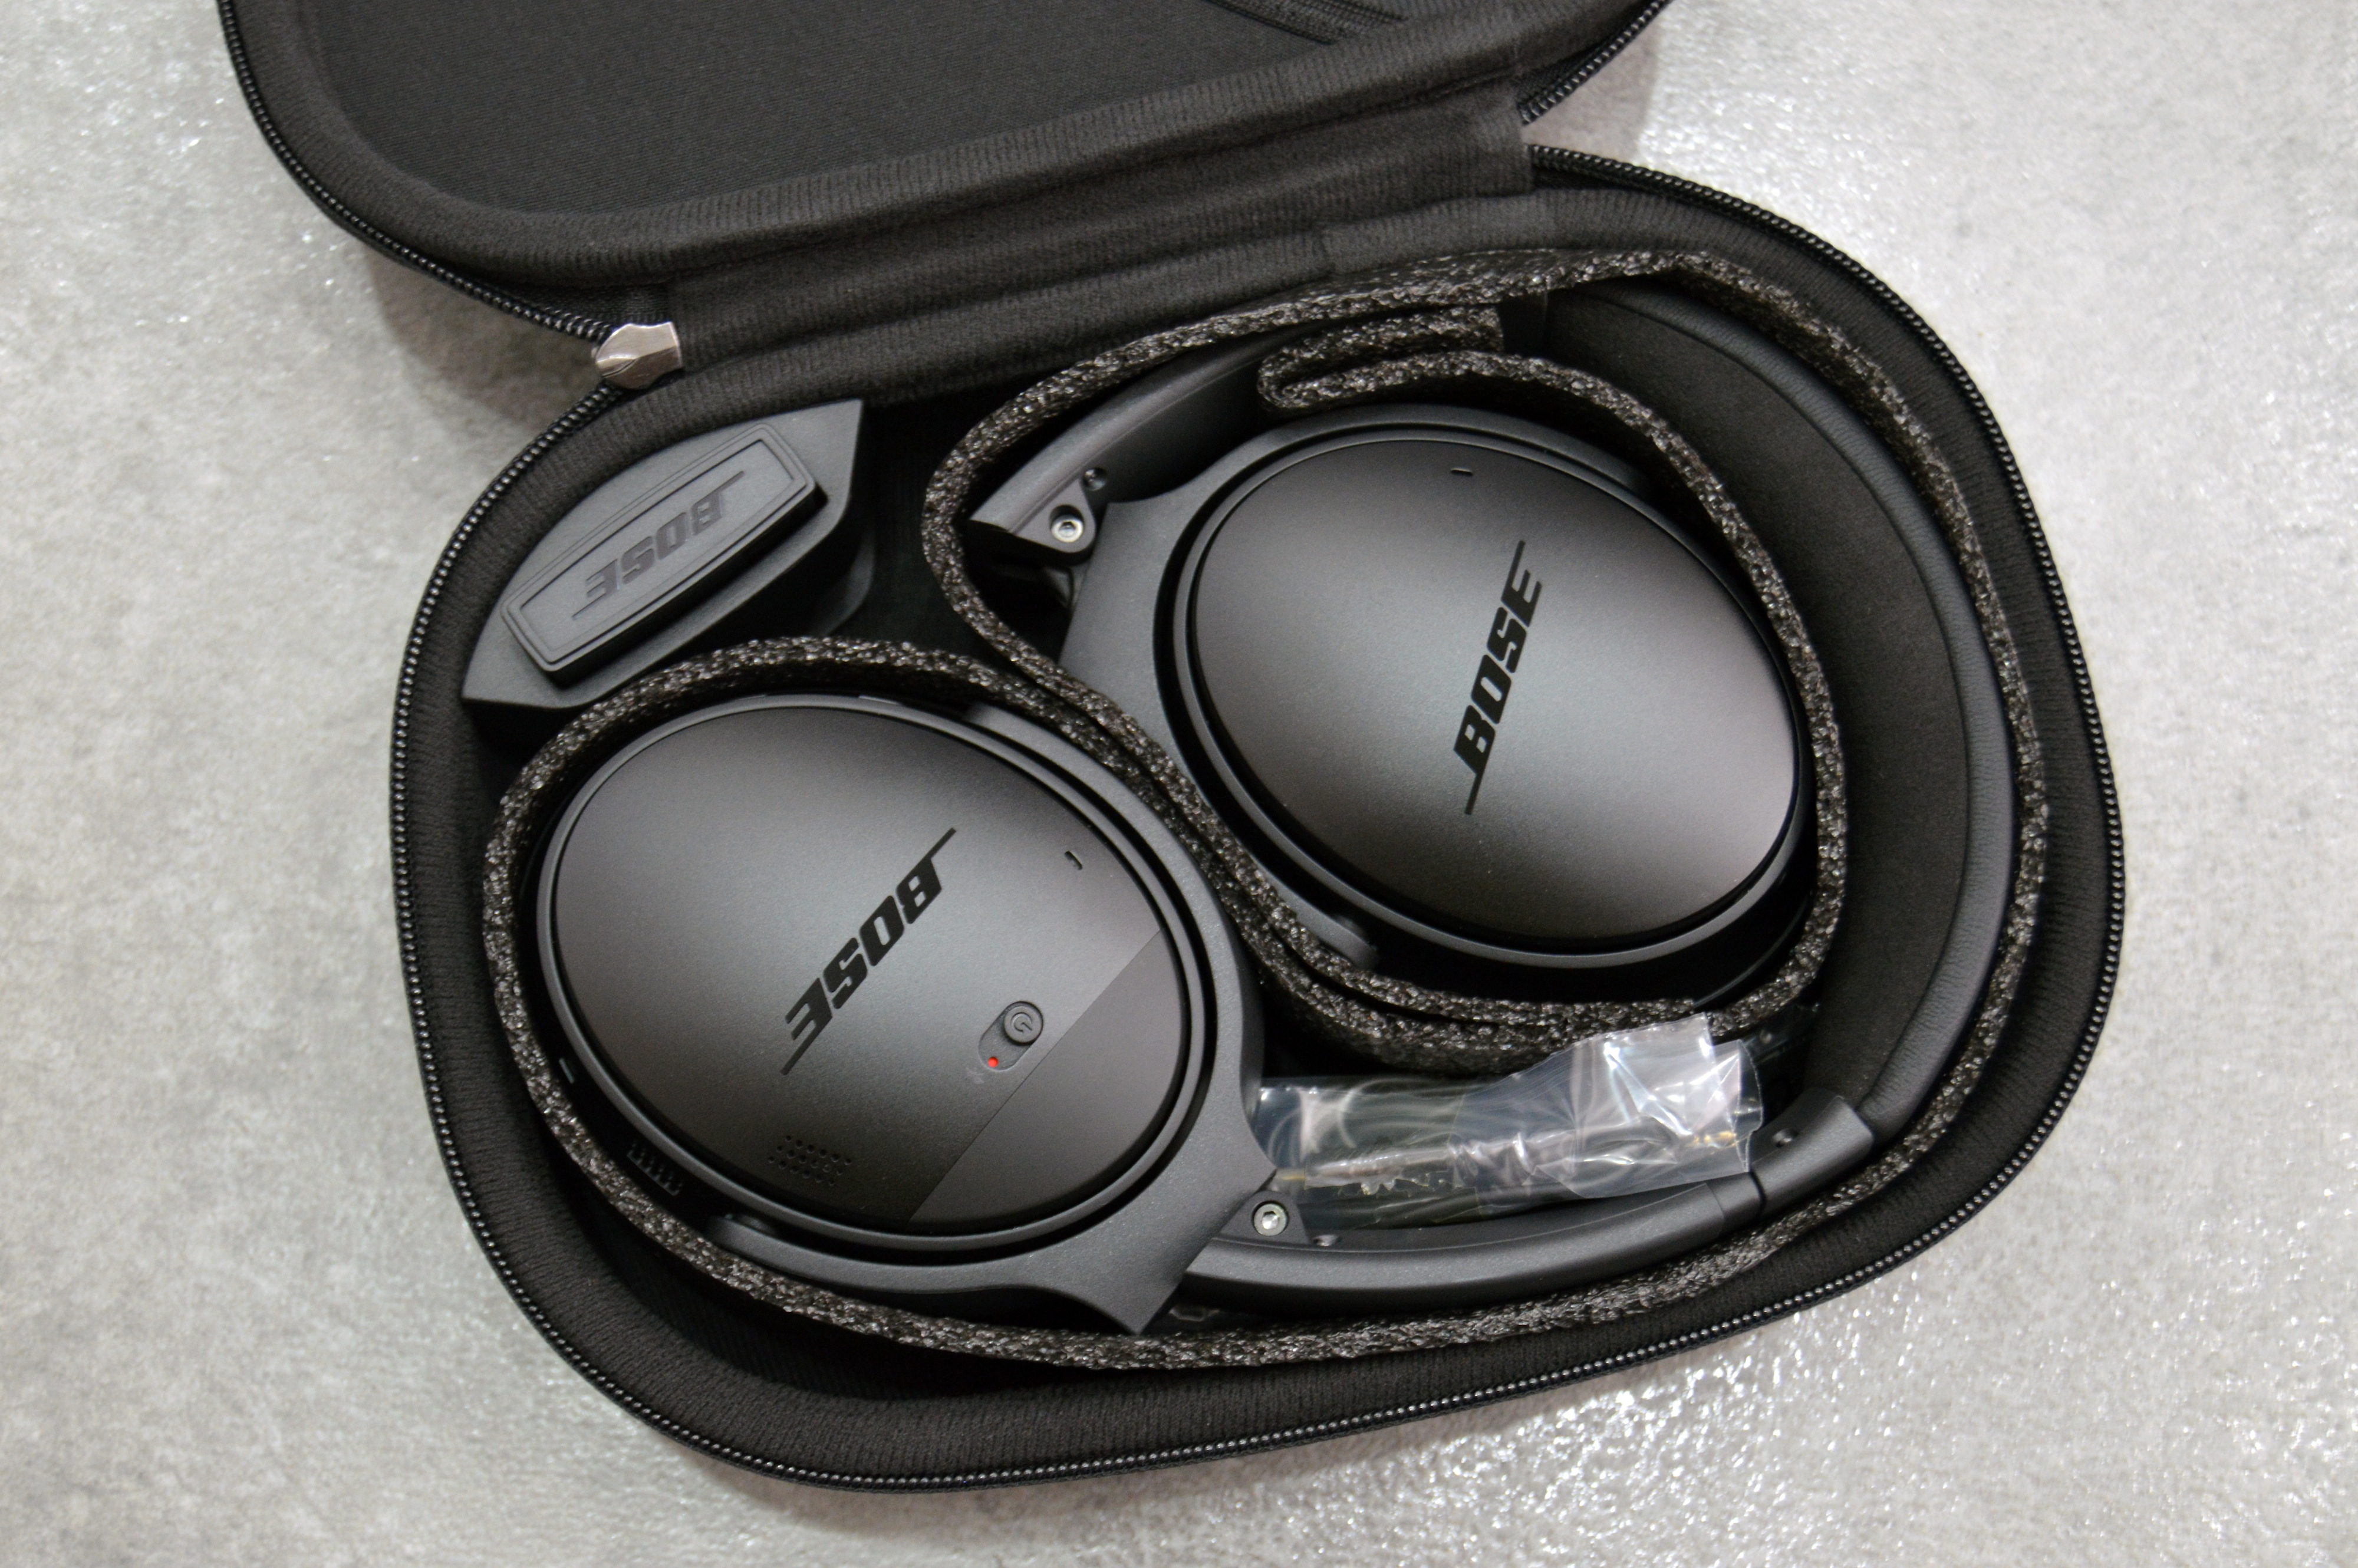 Bose Quietcomfort 35 Review Superb Quiet And Comfort Come With A Qc25 Headphone For Apple Devices White Qc35 Unboxing 2